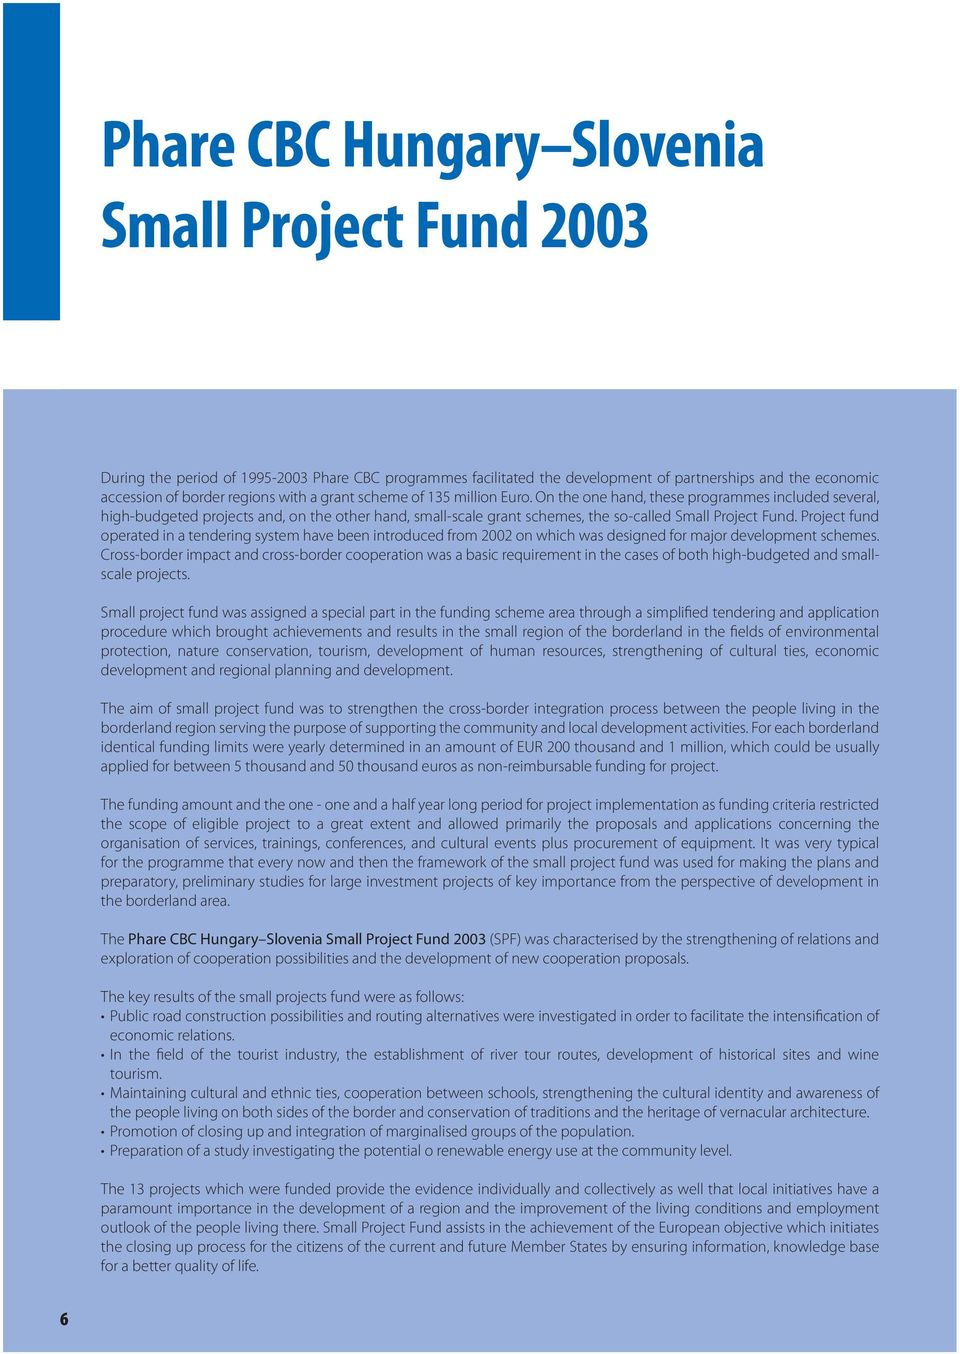 Project fund operated in a tendering system have been introduced from 2002 on which was designed for major development schemes.